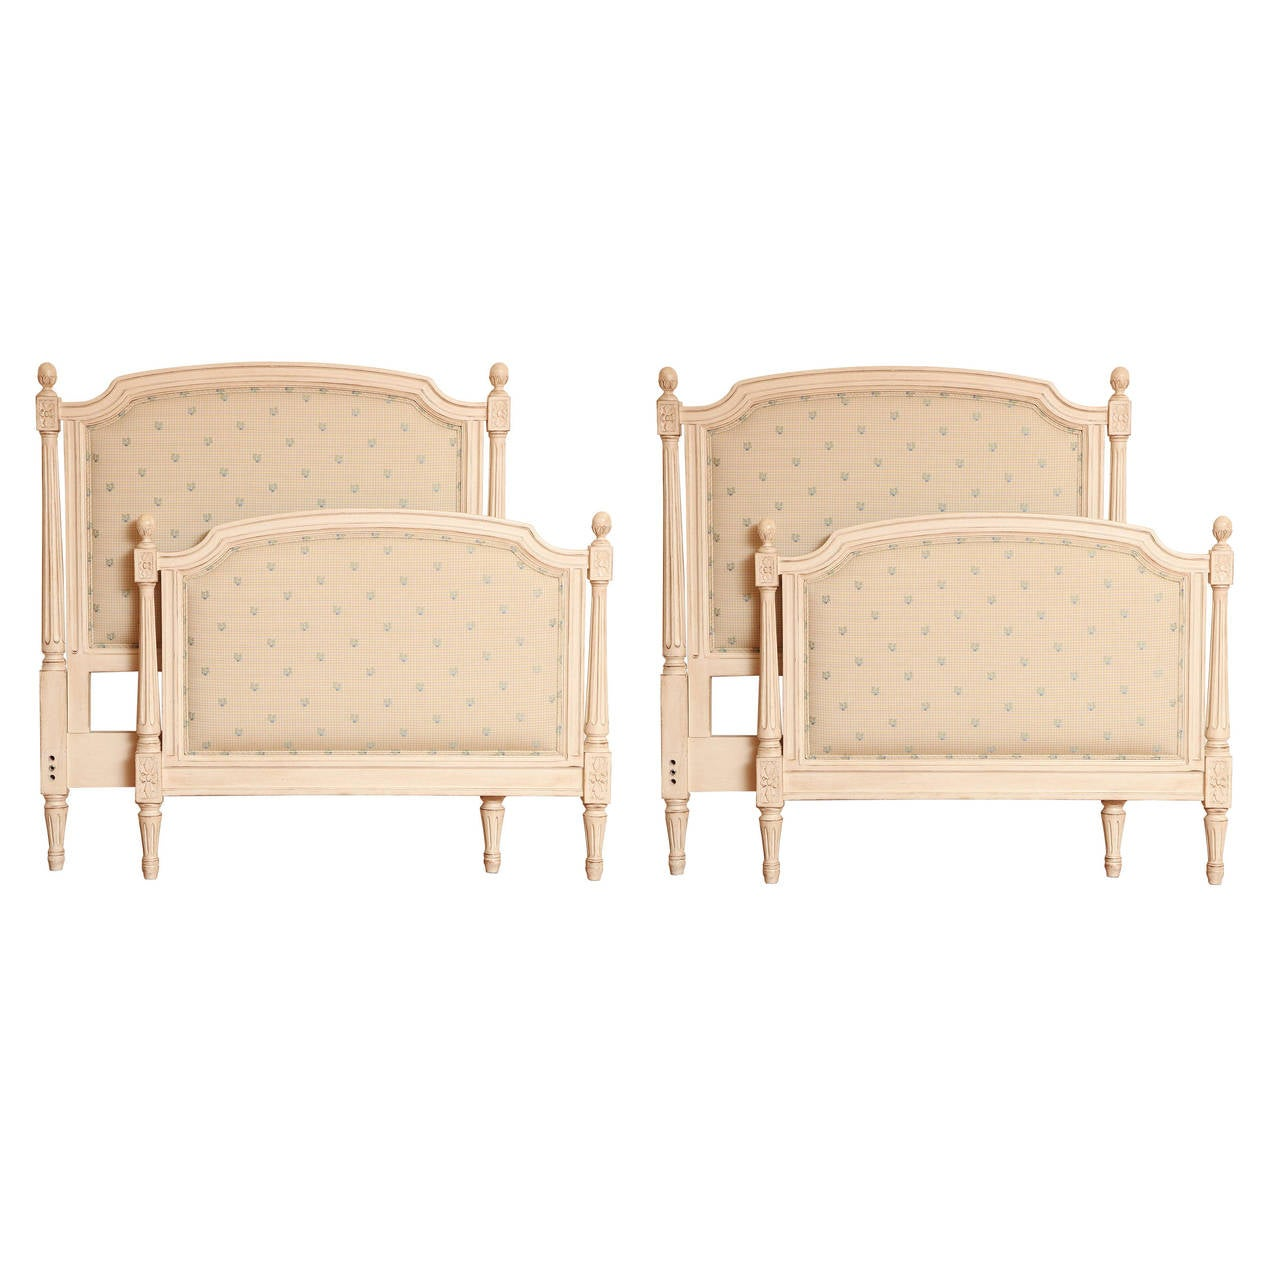 Pair Of Louis Xvi Style Antique White Twin Beds At 1stdibs